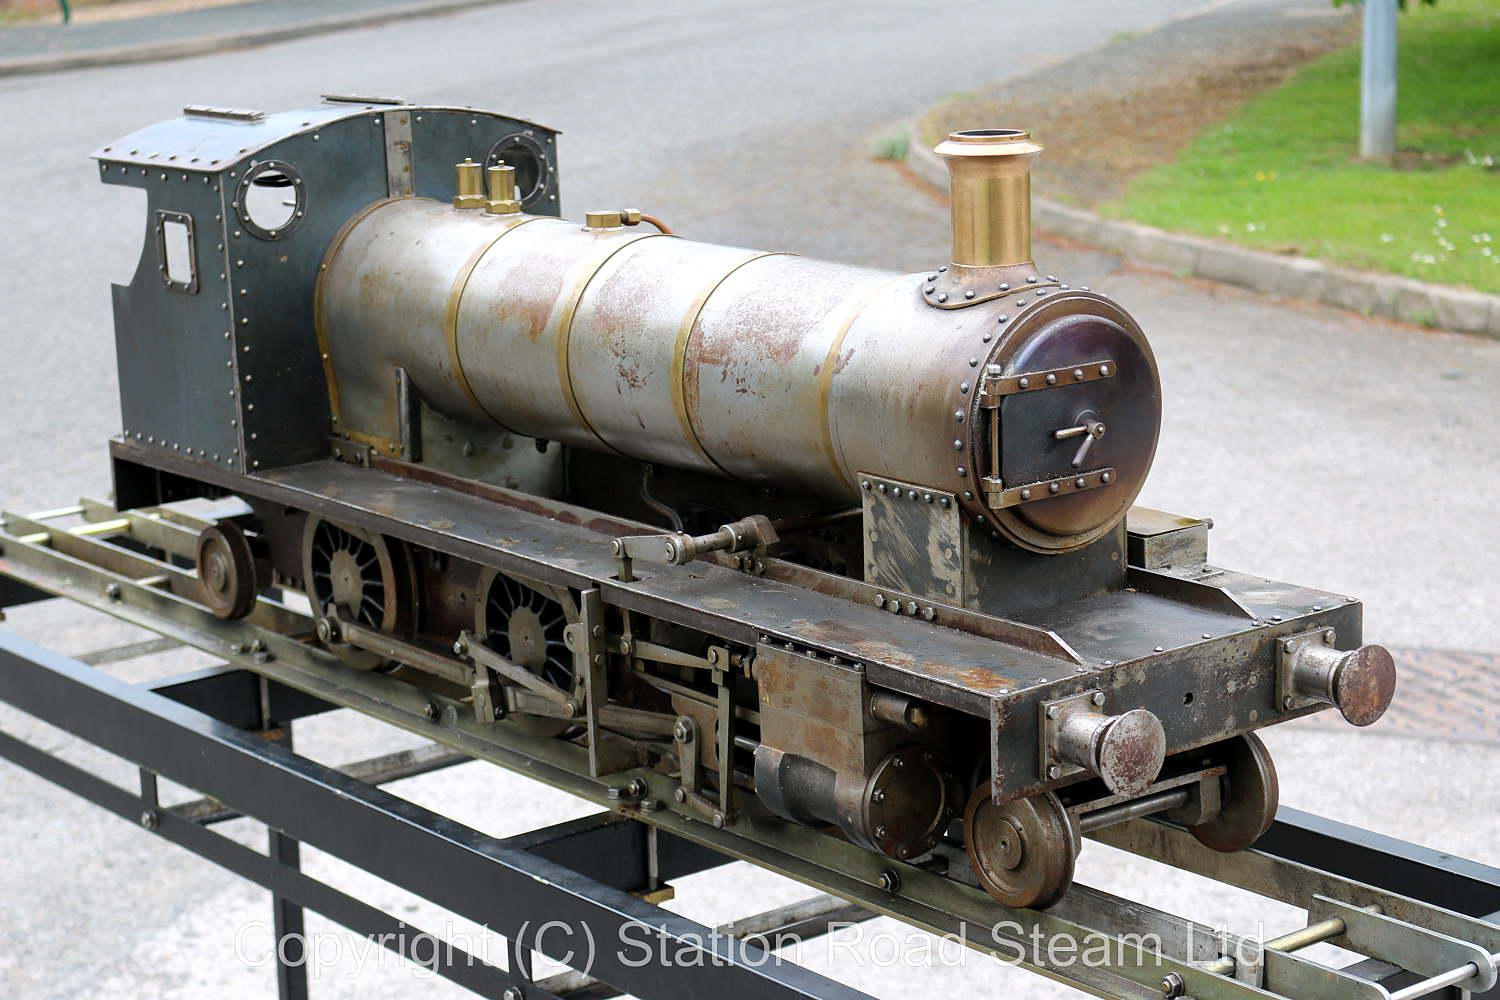 7 1/4 inch gauge 2-6-2 tender locomotive for completion